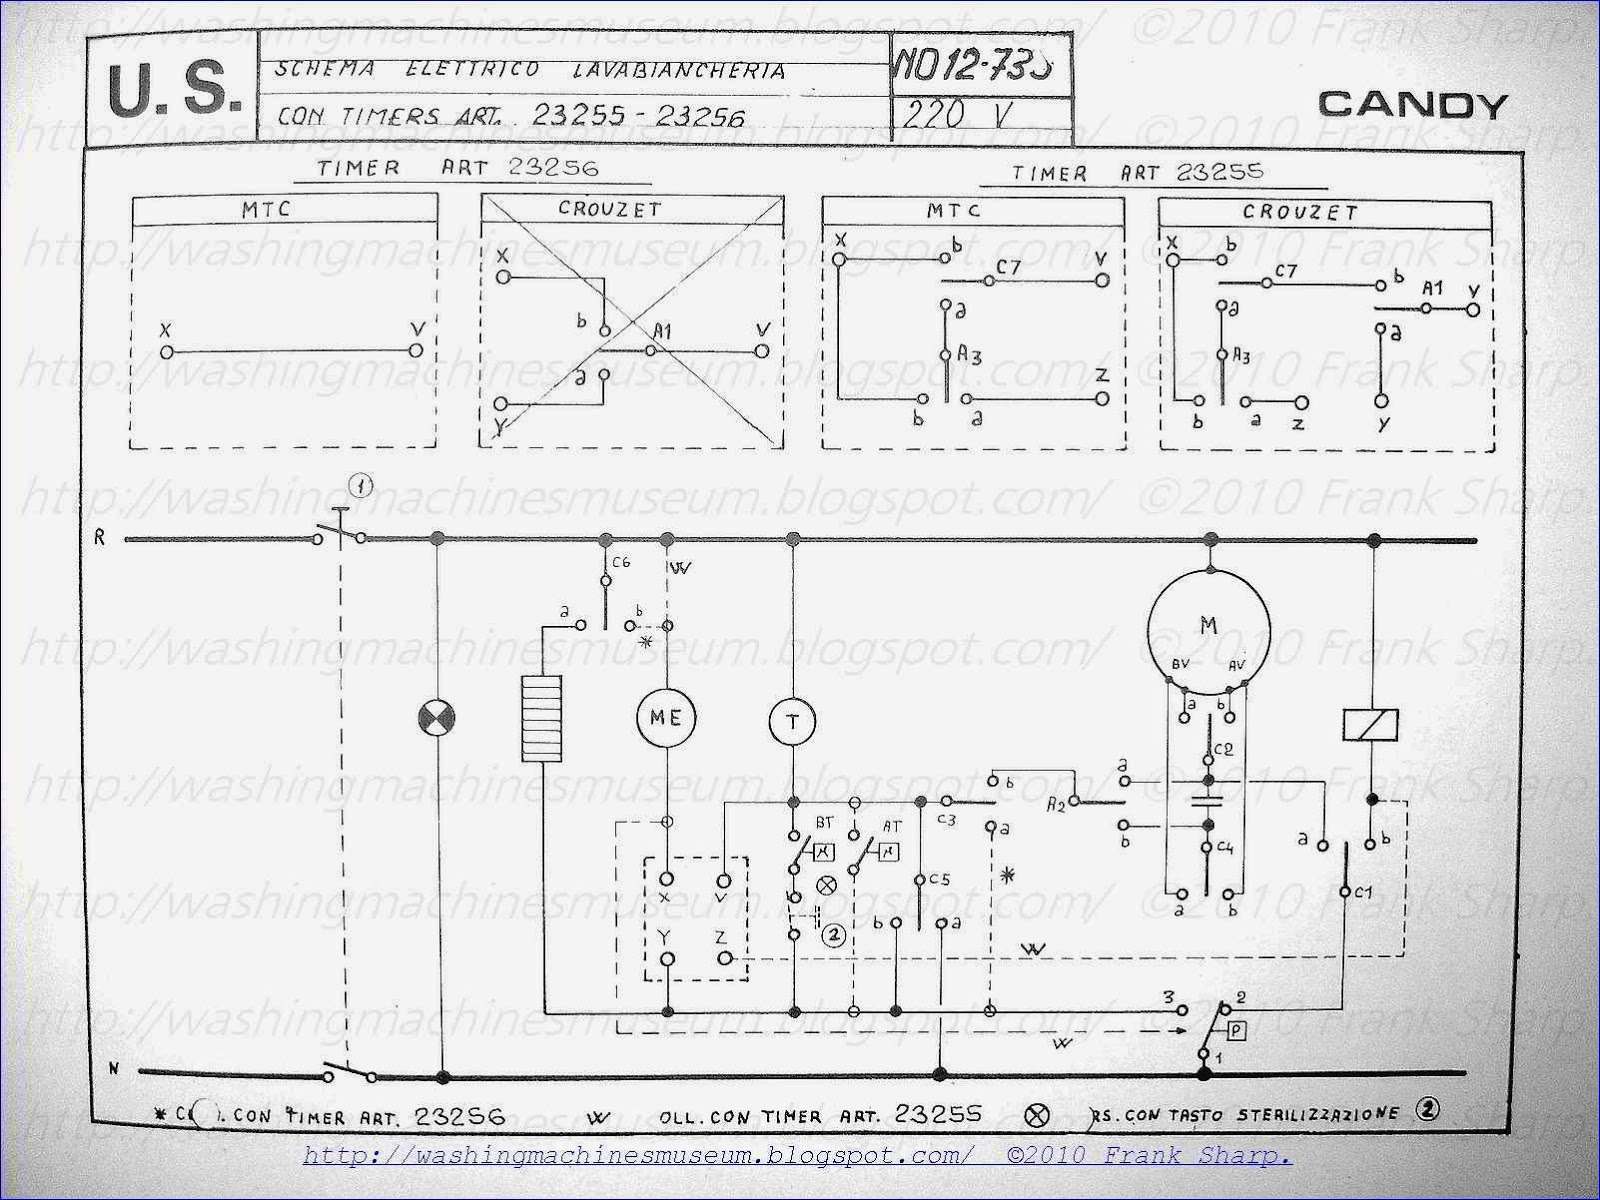 Maytag Heat Pump Wiring Diagram Library For Dishwasher Cool Oven Schematics Photos Electrical Circuit 1200